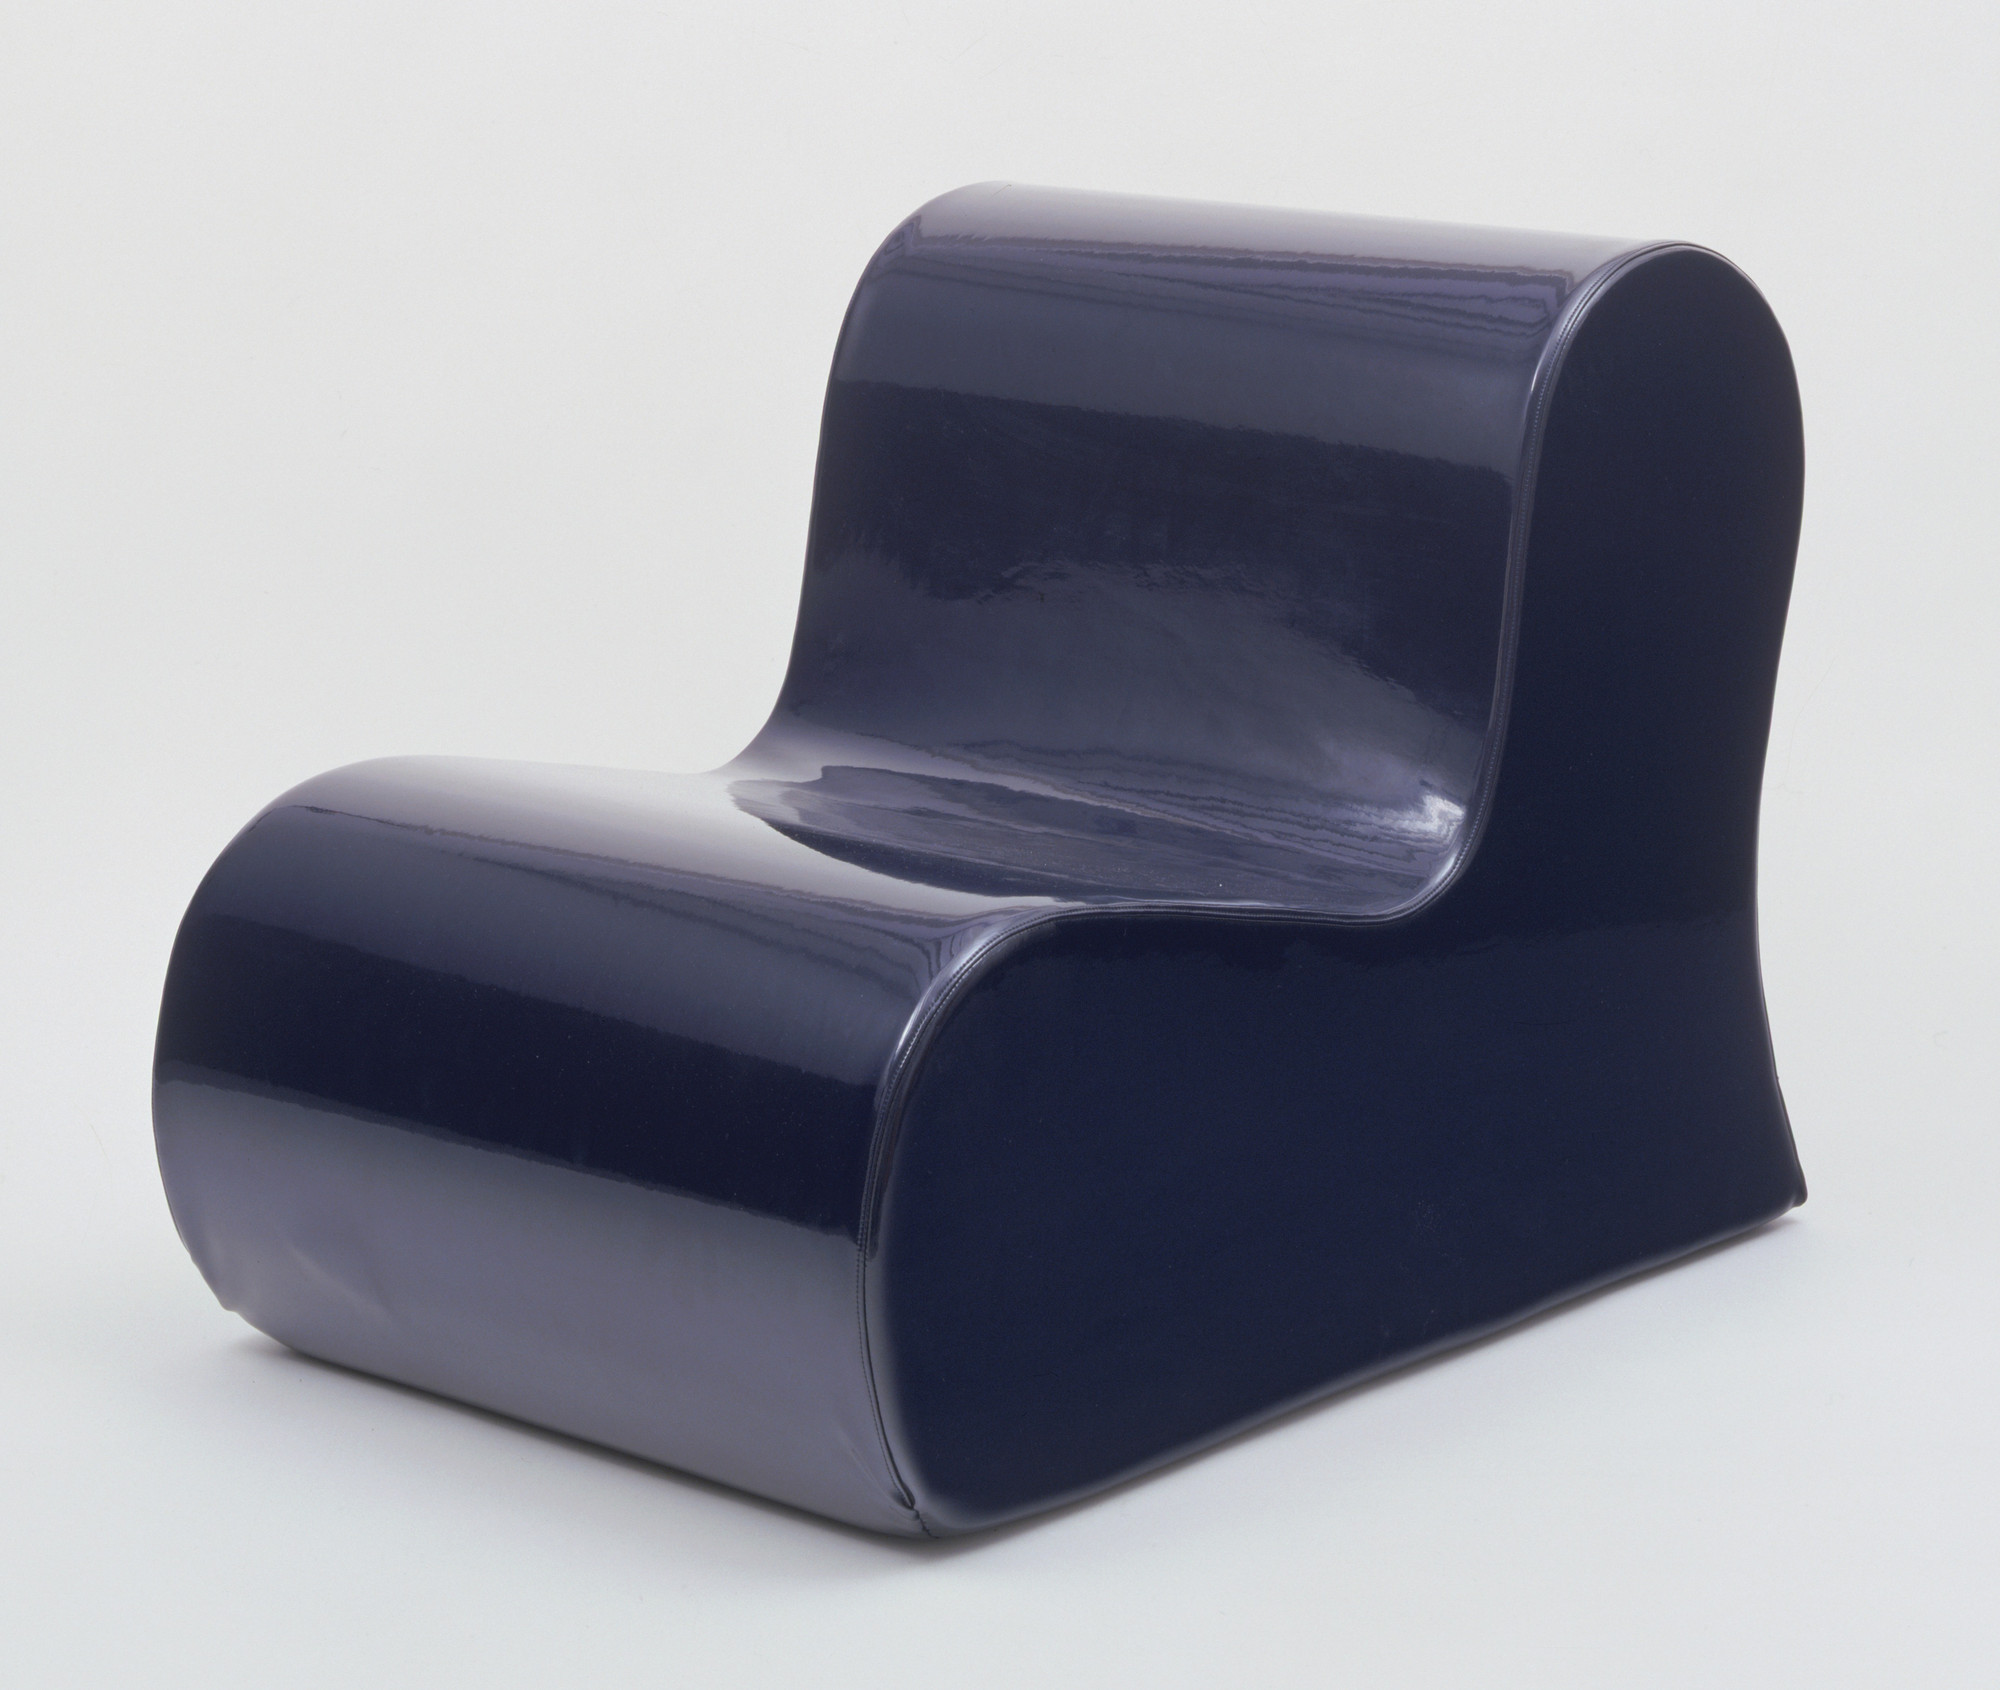 Susi Berger, Ueli Berger. Soft Chair. 1967